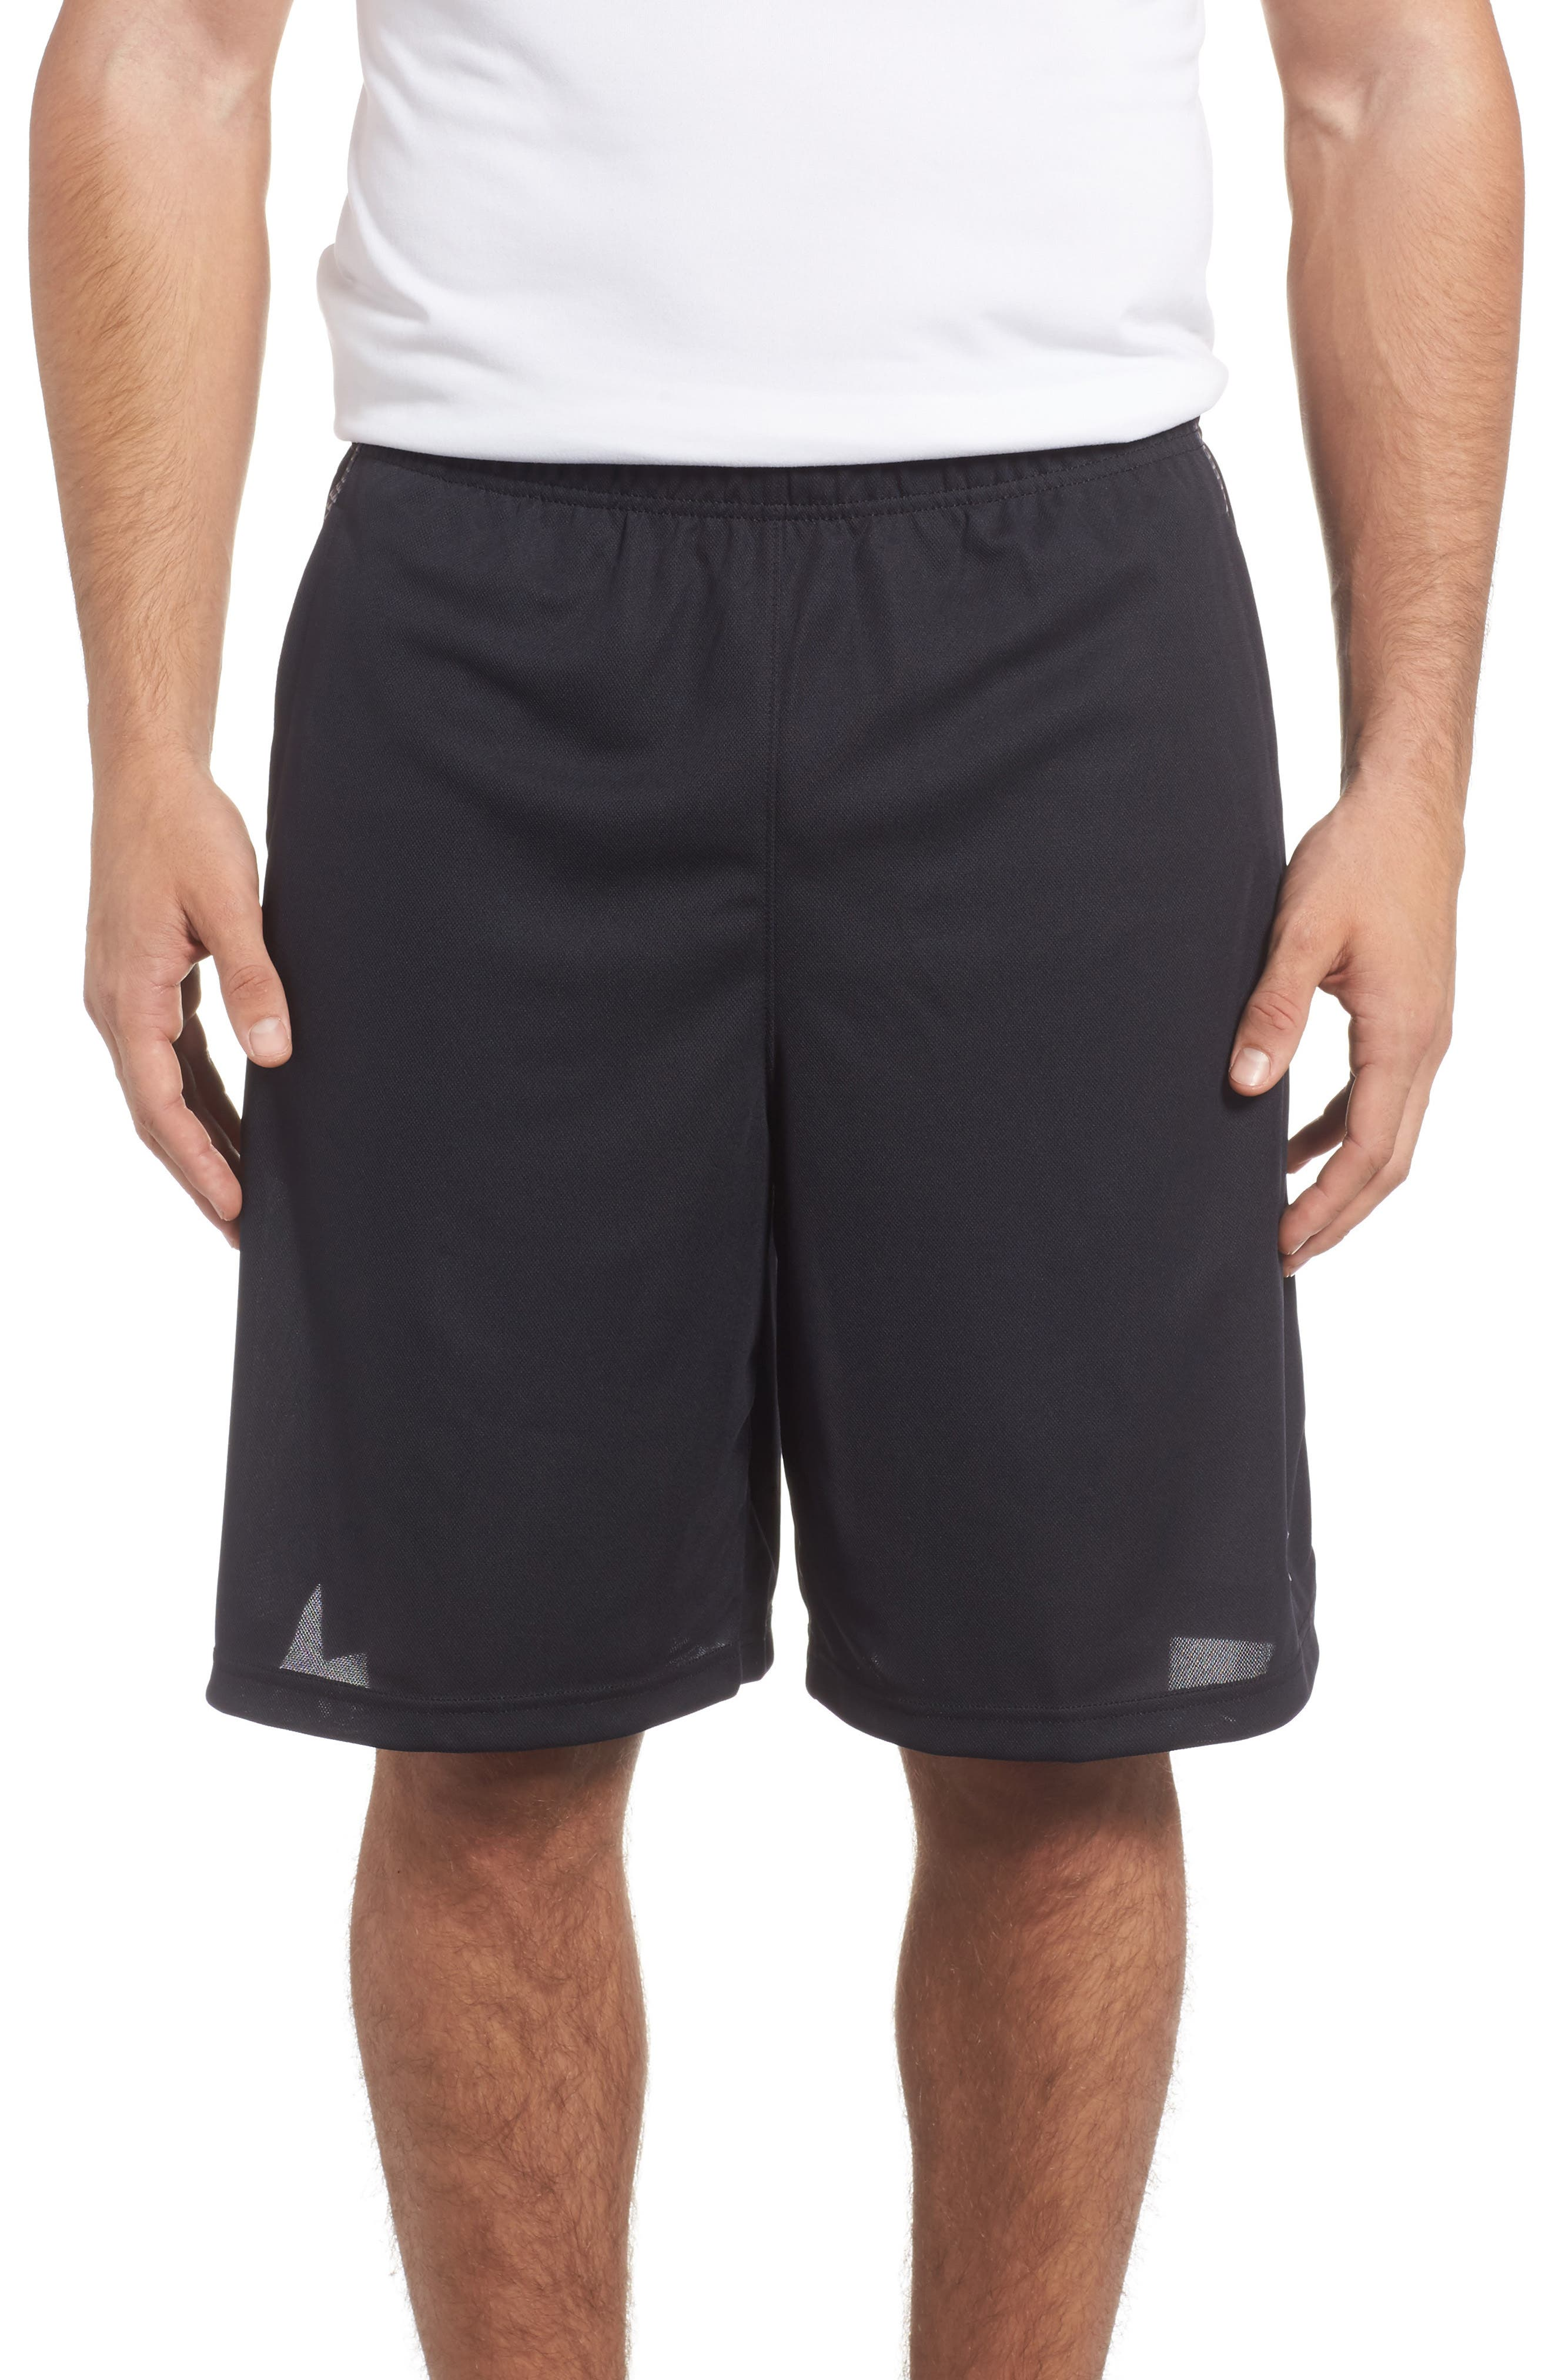 Alternate Image 1 Selected - Under Armour Select Basketball Shorts